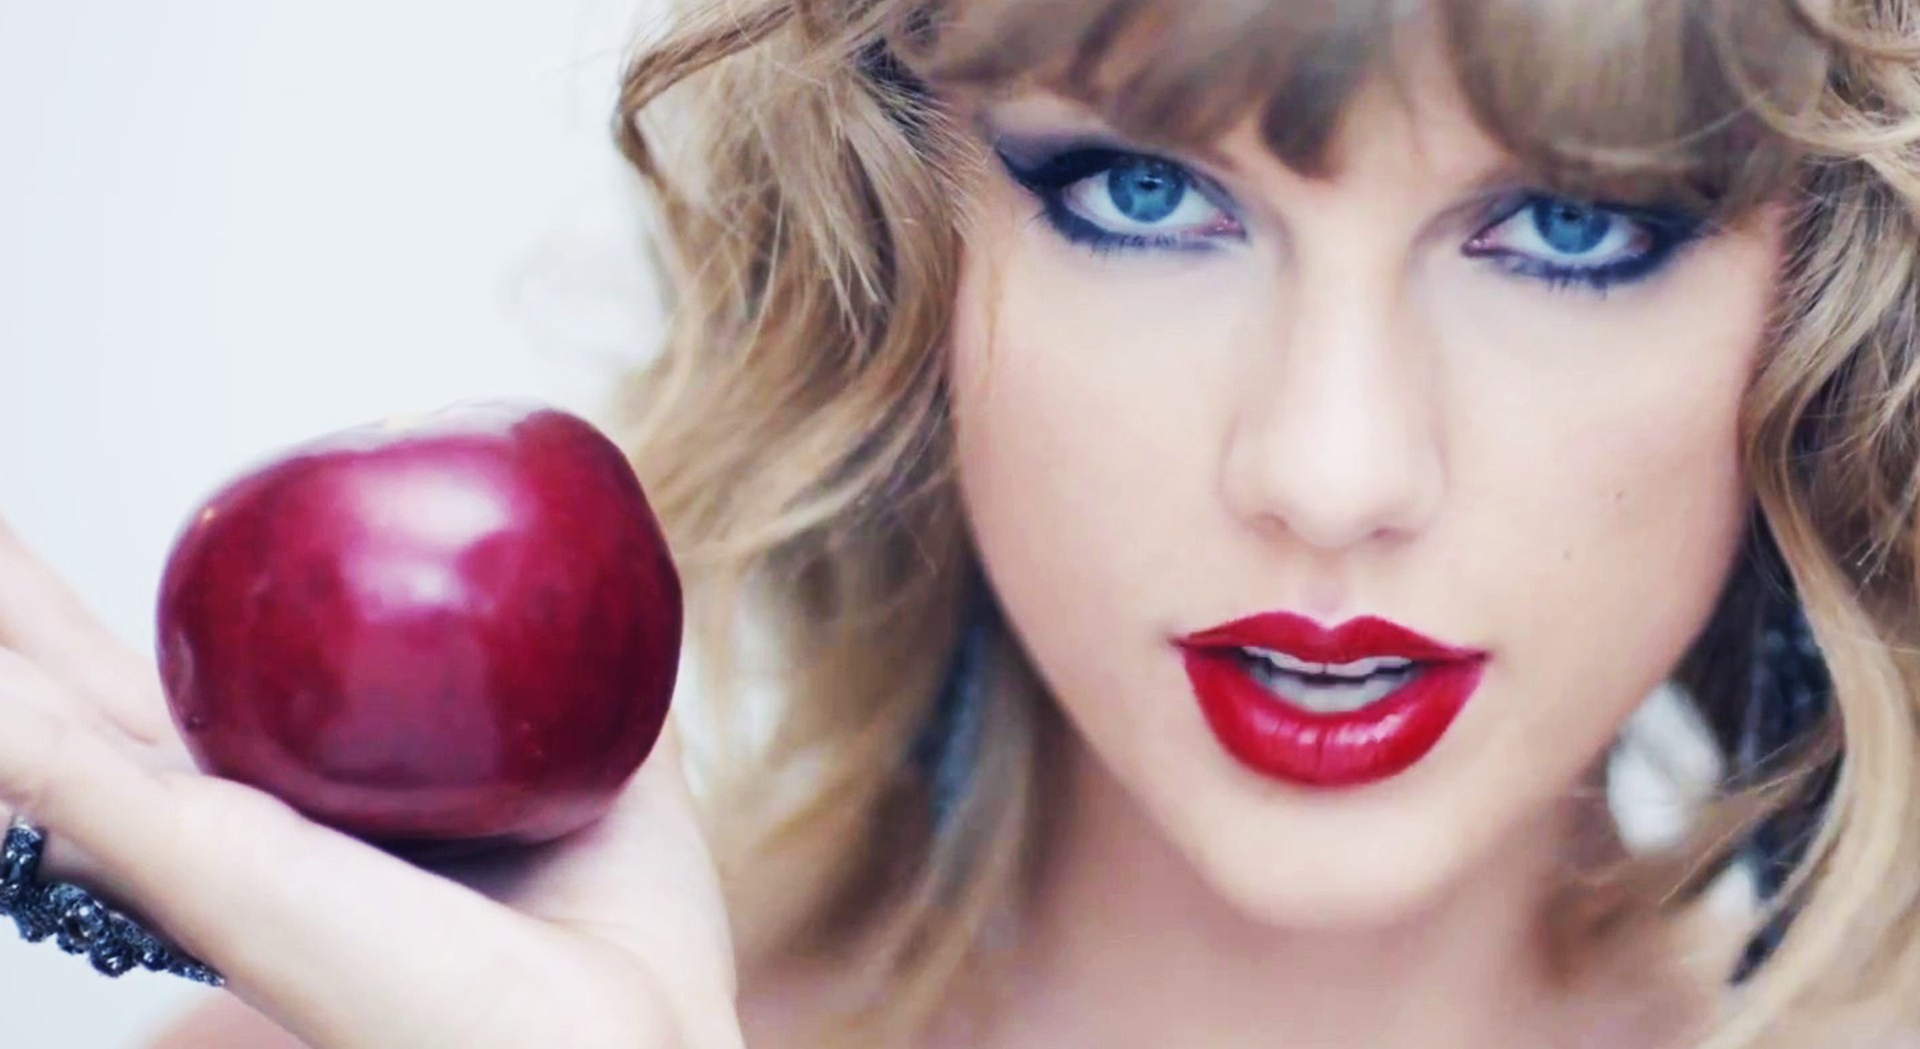 Taylor Swift holding apple